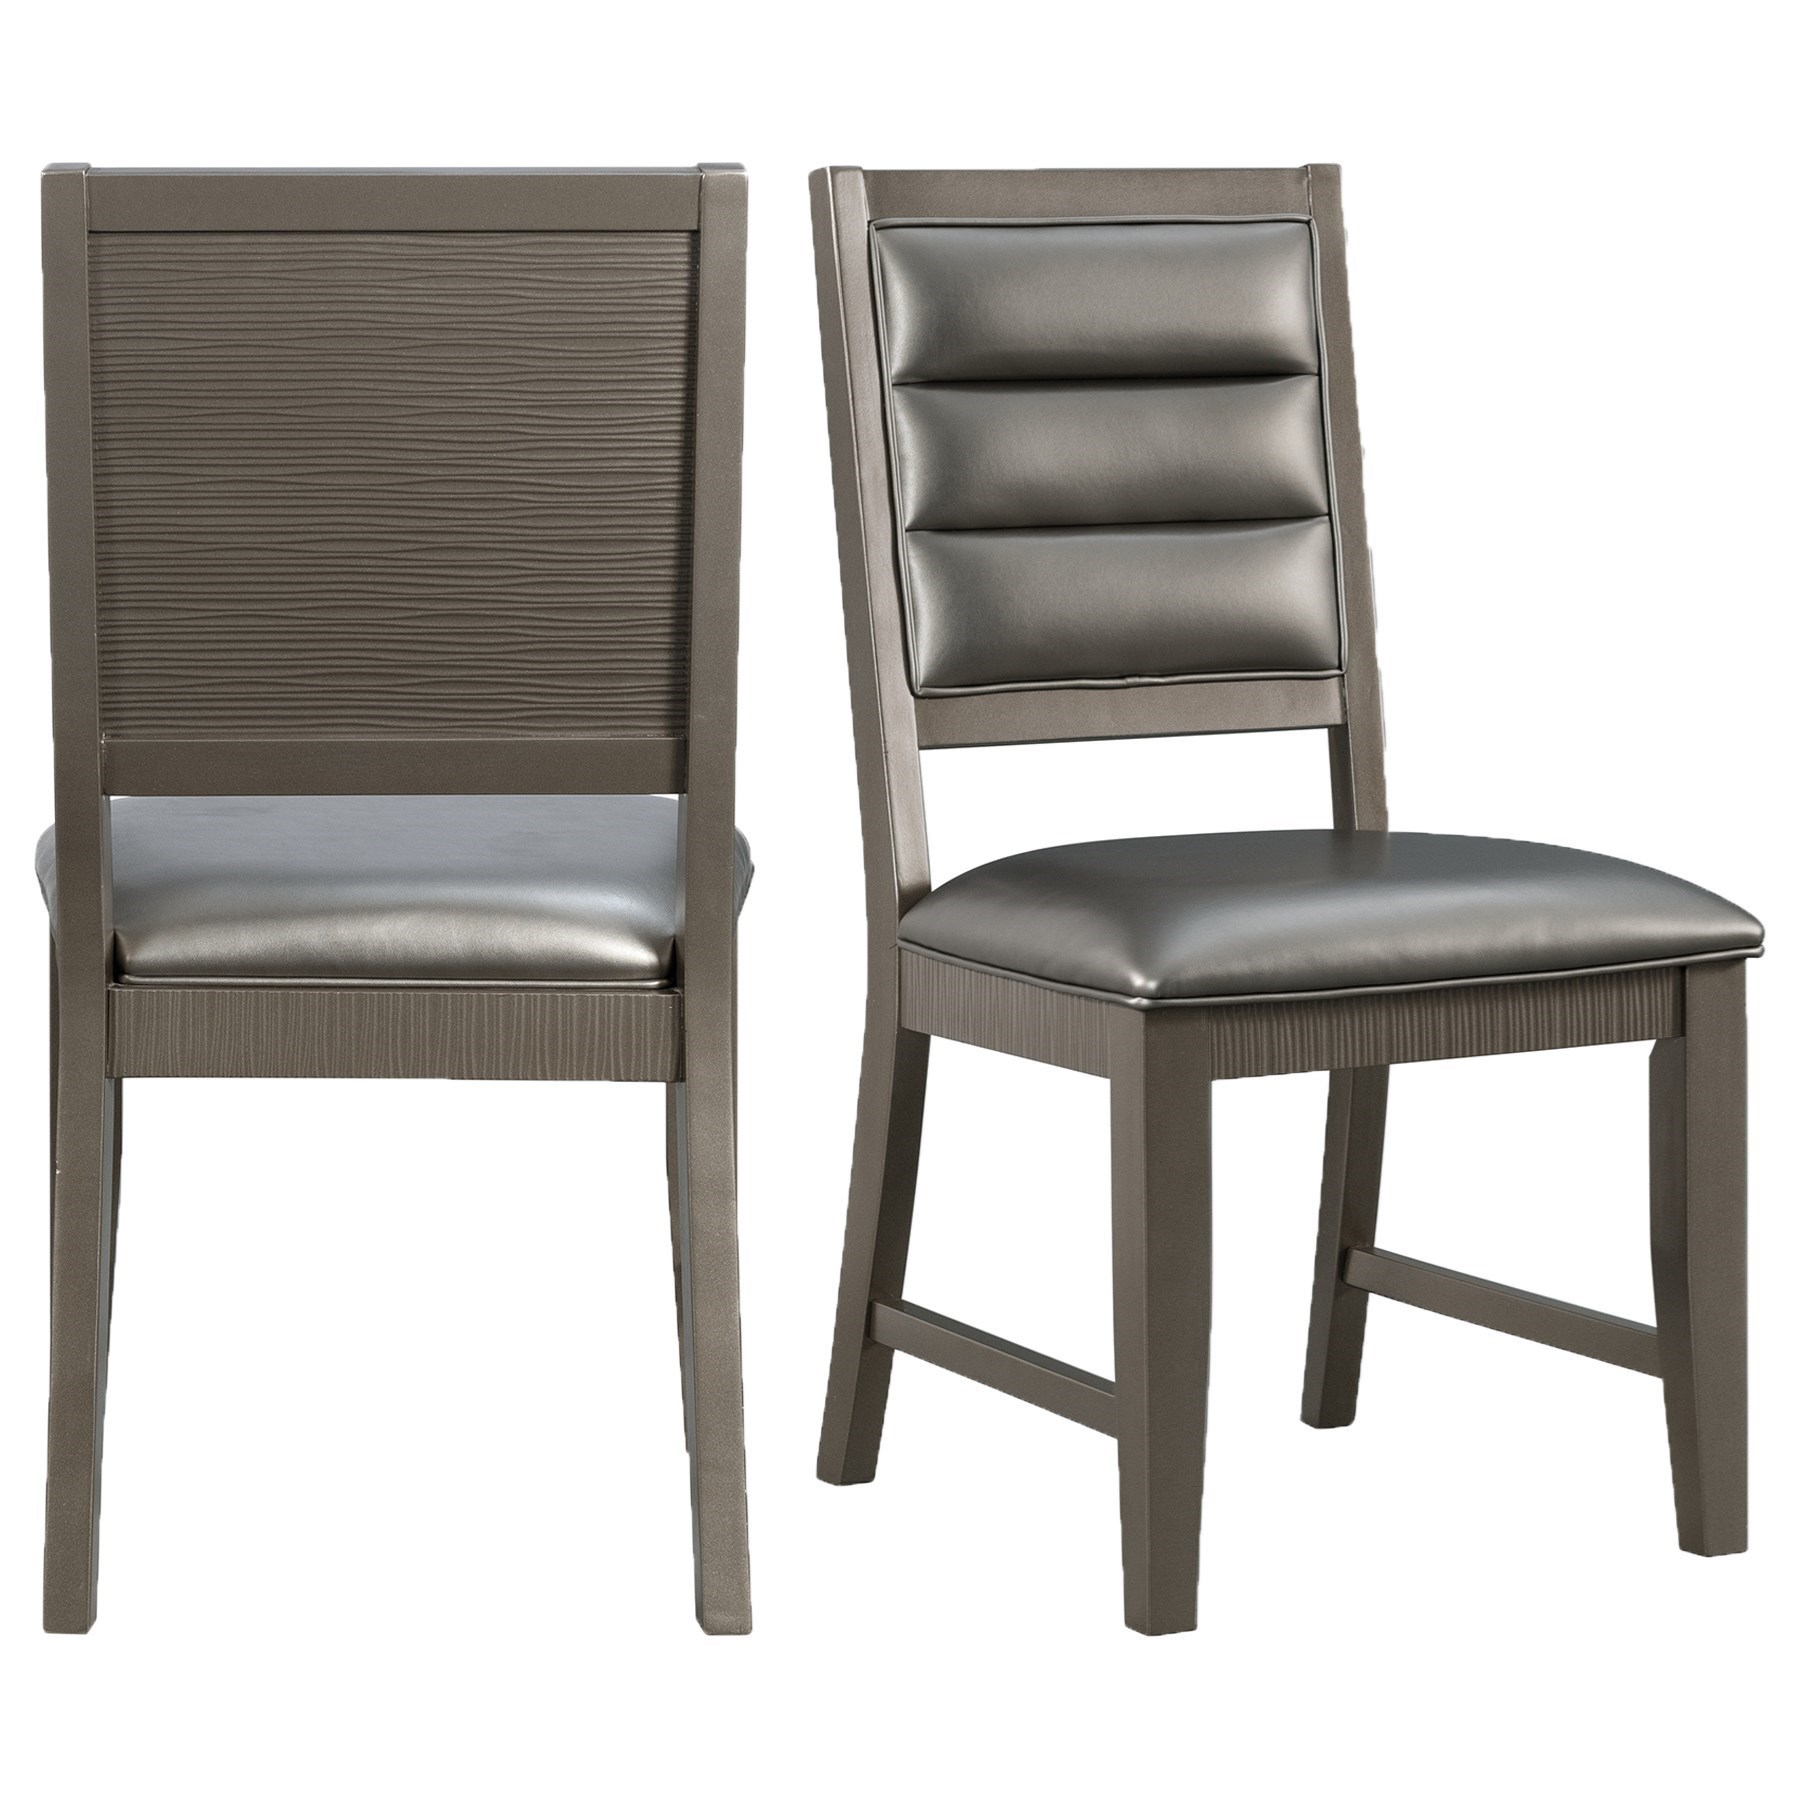 14.5 Standard Height Side Chair by Elements International at Story & Lee Furniture